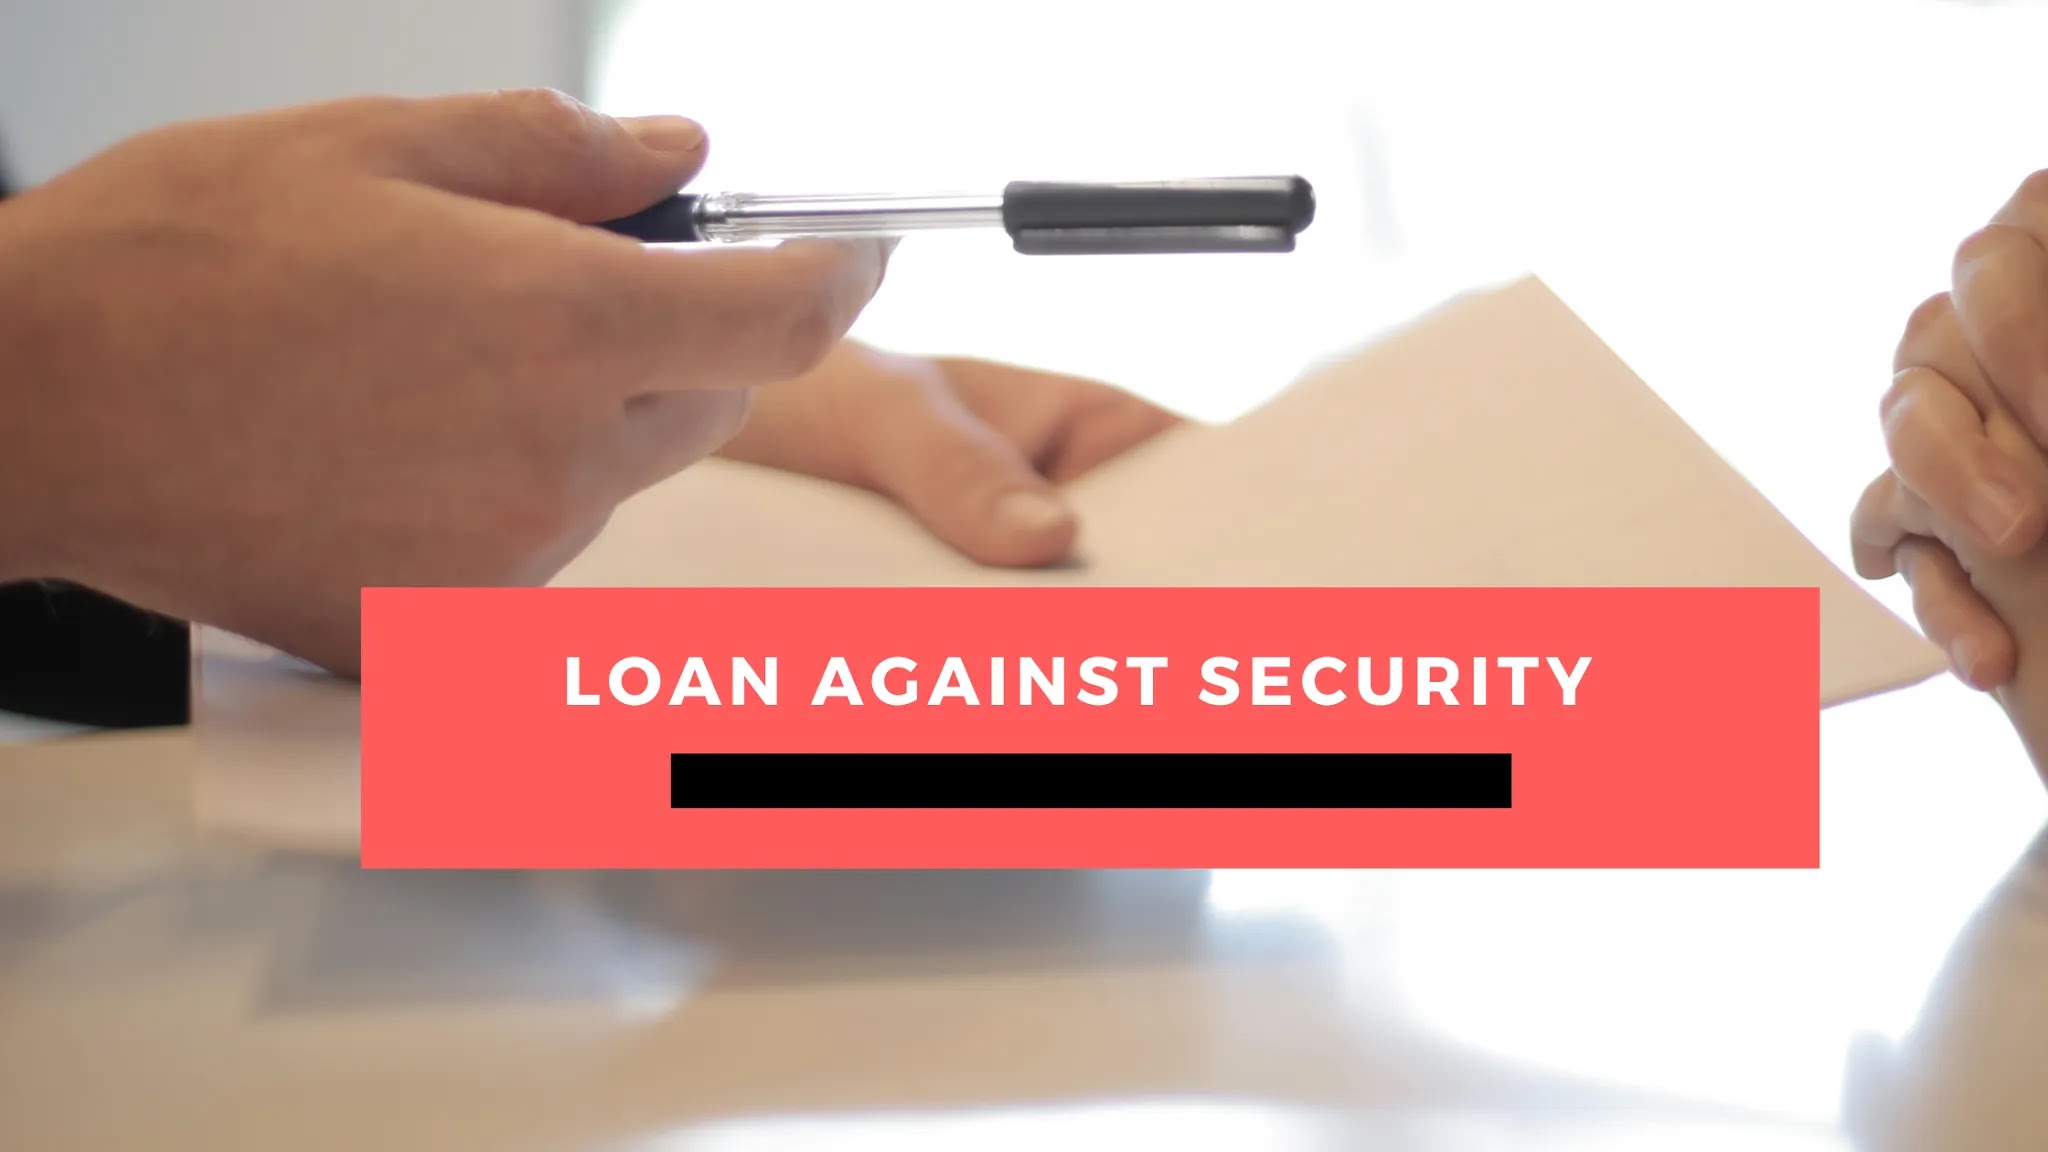 Importance of loan, Advantages of loan, Example of loan, Personal loan, What is loan management, What is bank loan, What is Loan in Hindi, Types of loan, What are the 4 types of loans?